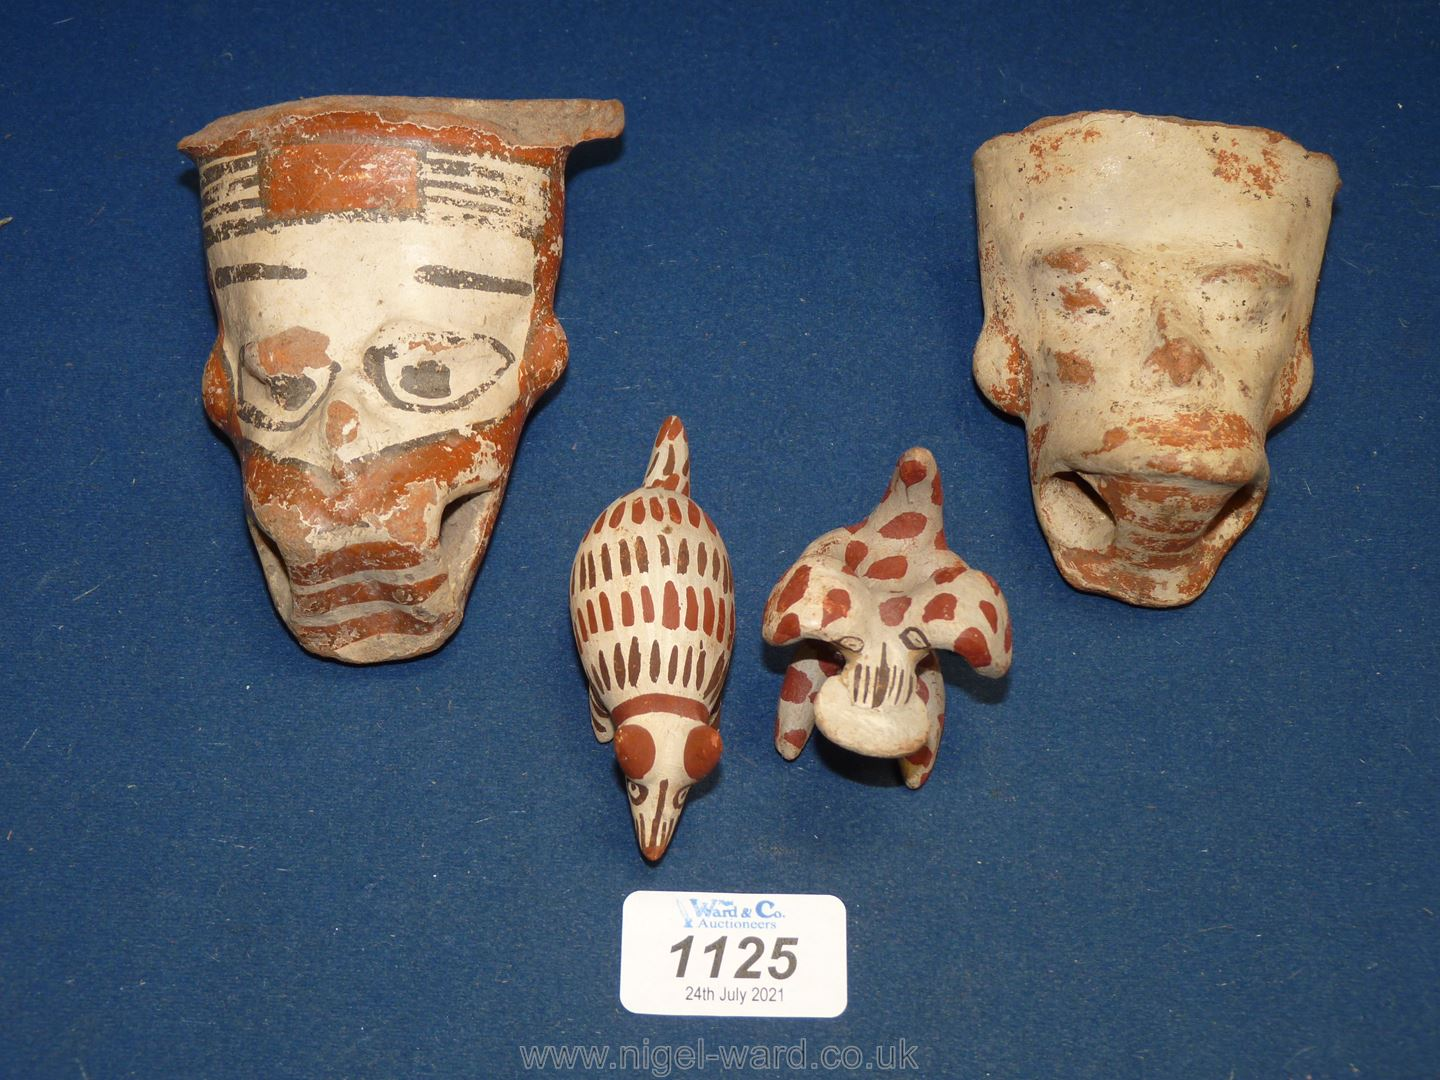 Two pottery heads with rattle balls inside and two small animals.